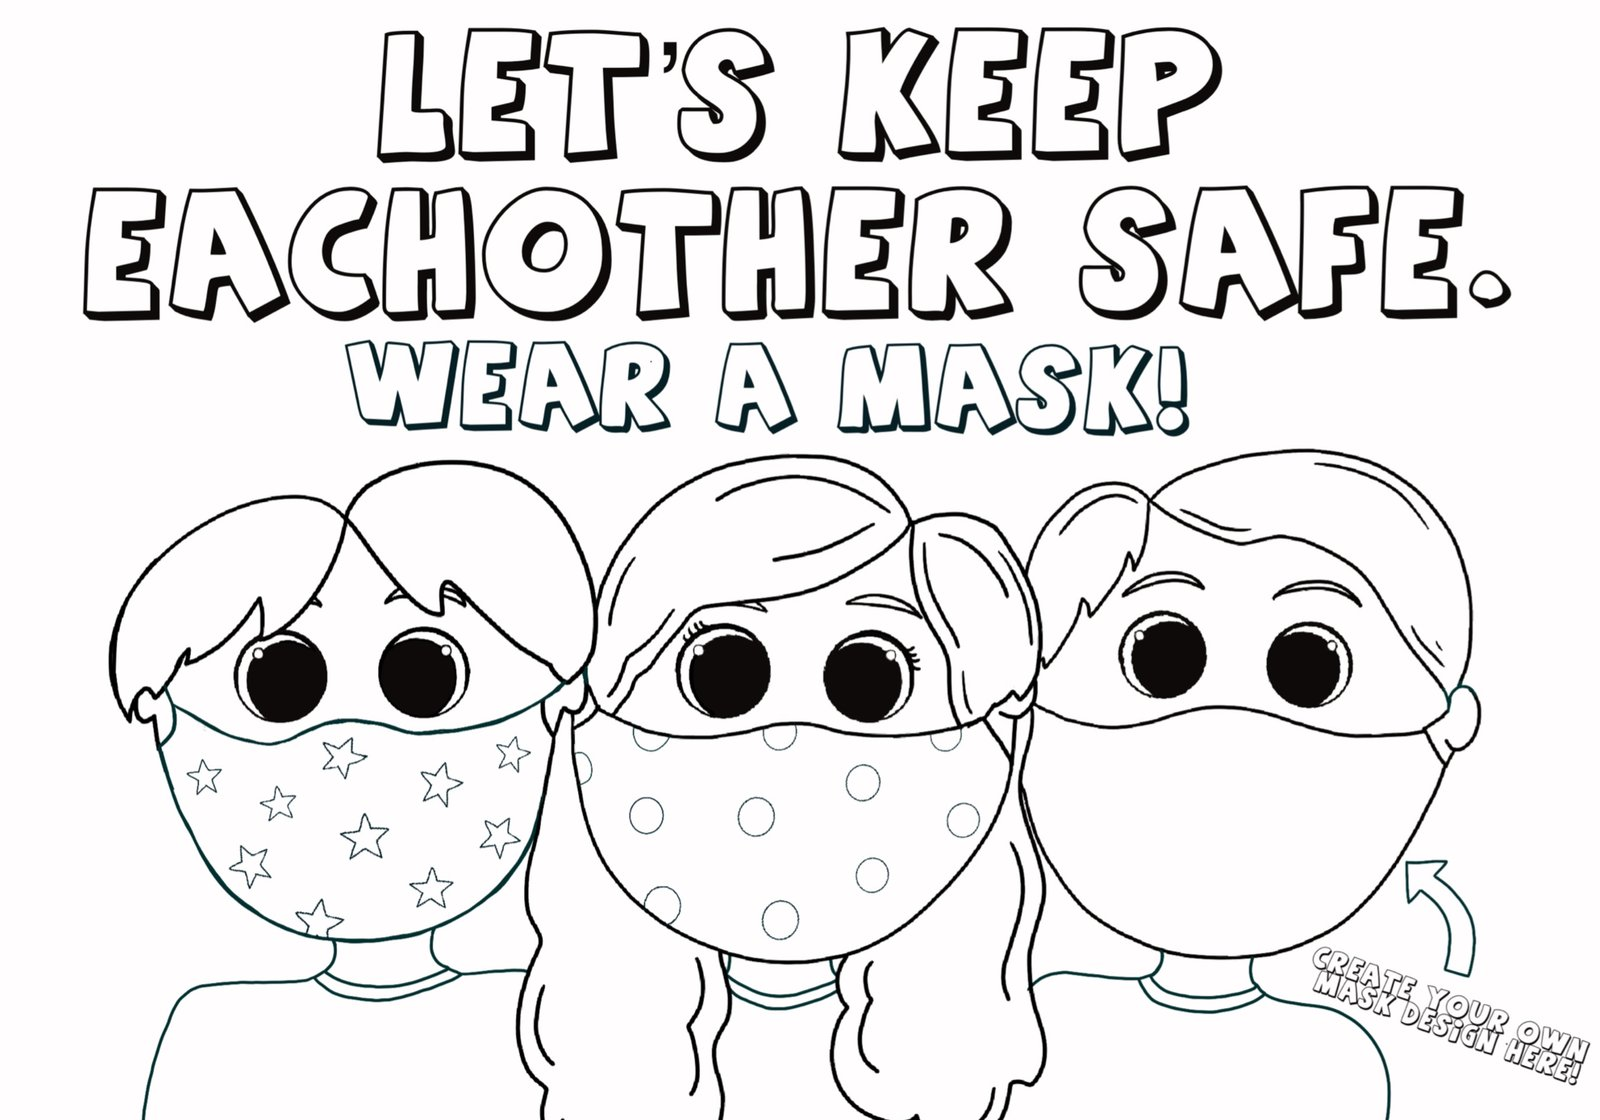 kids wearing masks coloring woolies for 1600x crayola crayon color chart capital in coloring pages Coloring Page For Kids